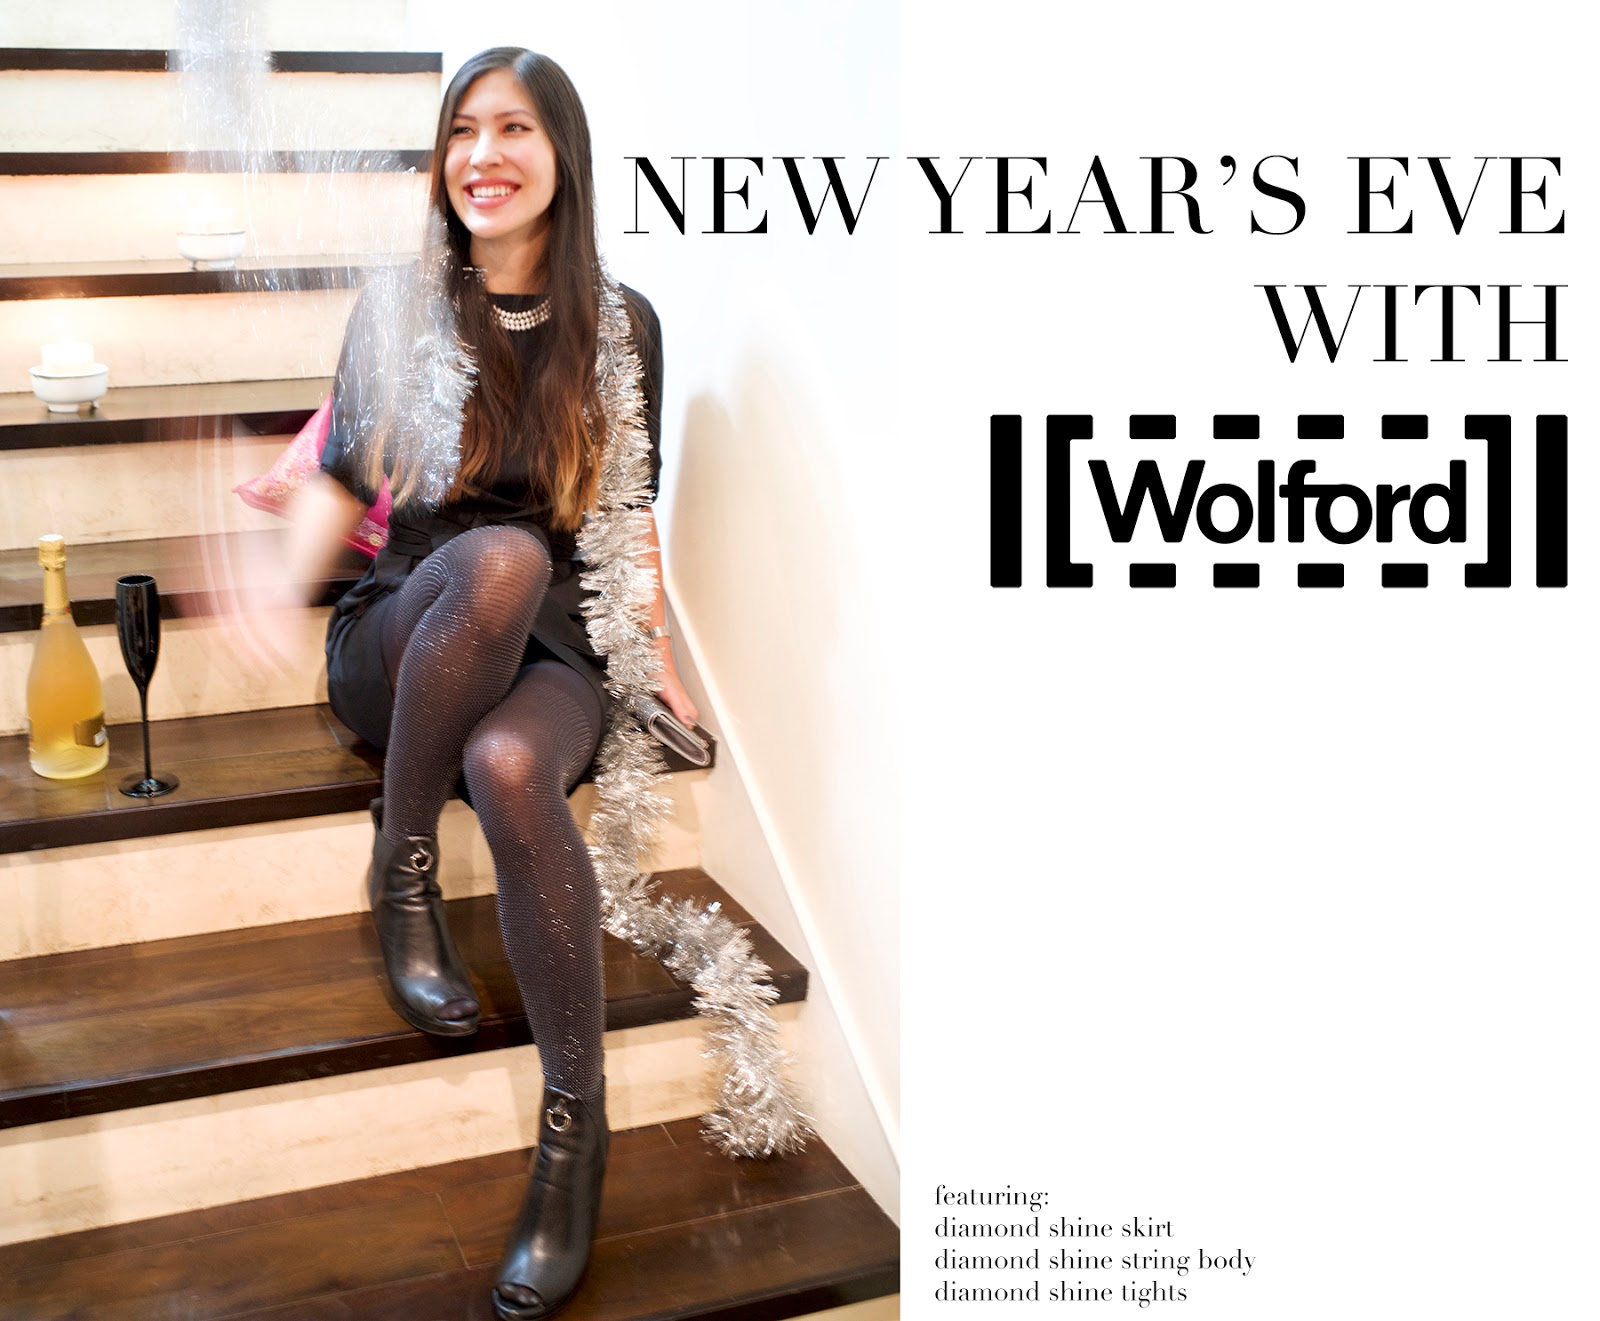 Euriental | luxury travel & style | NYE with Wolford